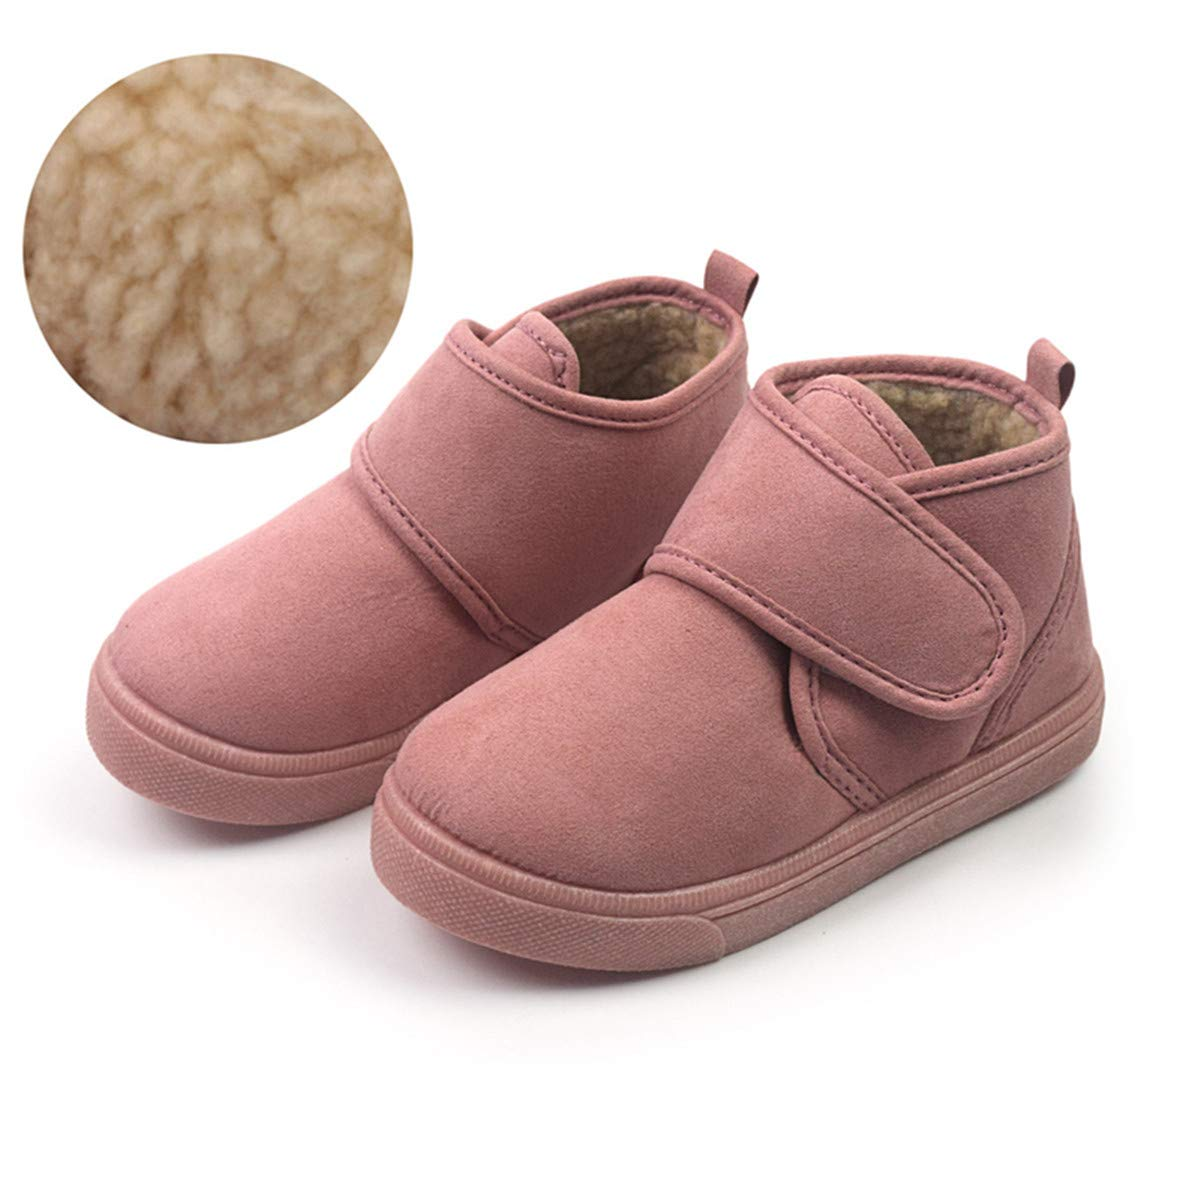 Toddler Kids Boots Girls Boys Shoes Hiking Winter Snow Booties